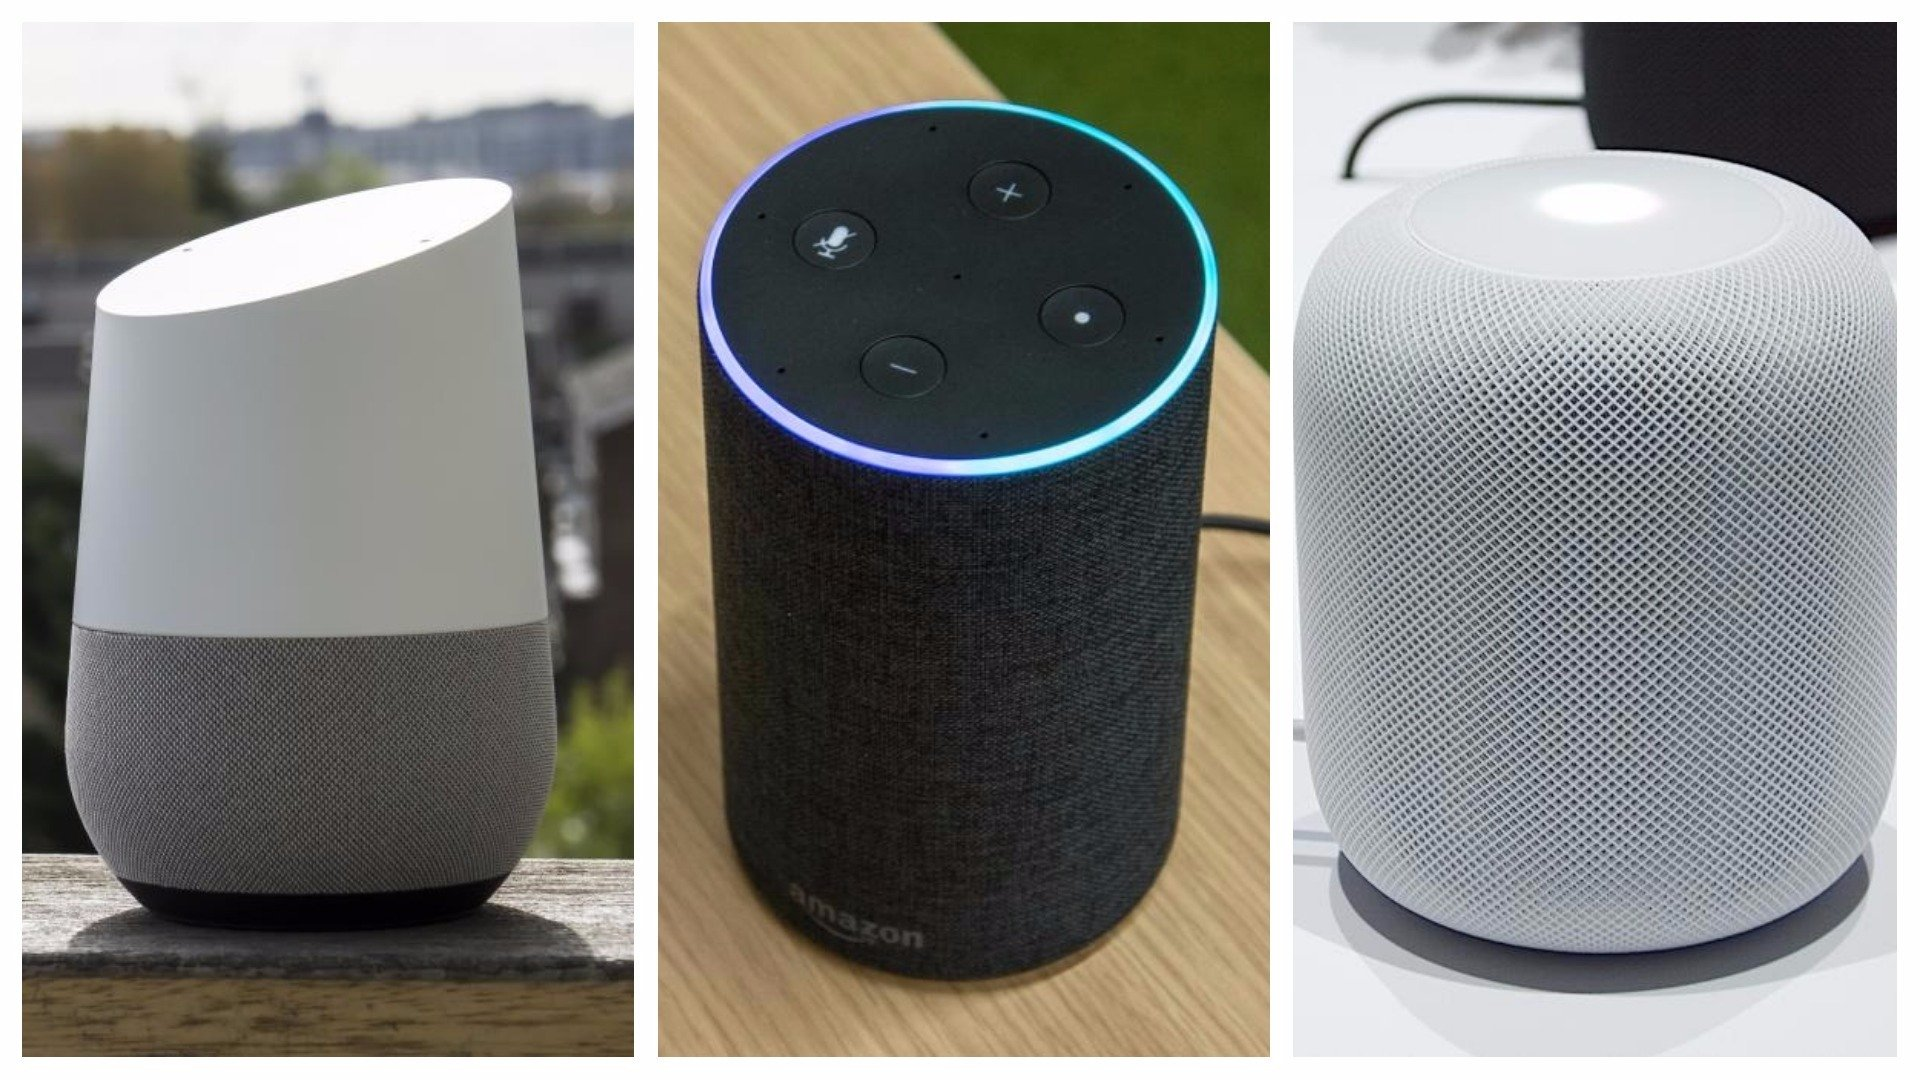 29e72a7d32ea98 Google Home vs Amazon Echo vs Apple HomePod: Which smart speaker is best? |  Expert Reviews